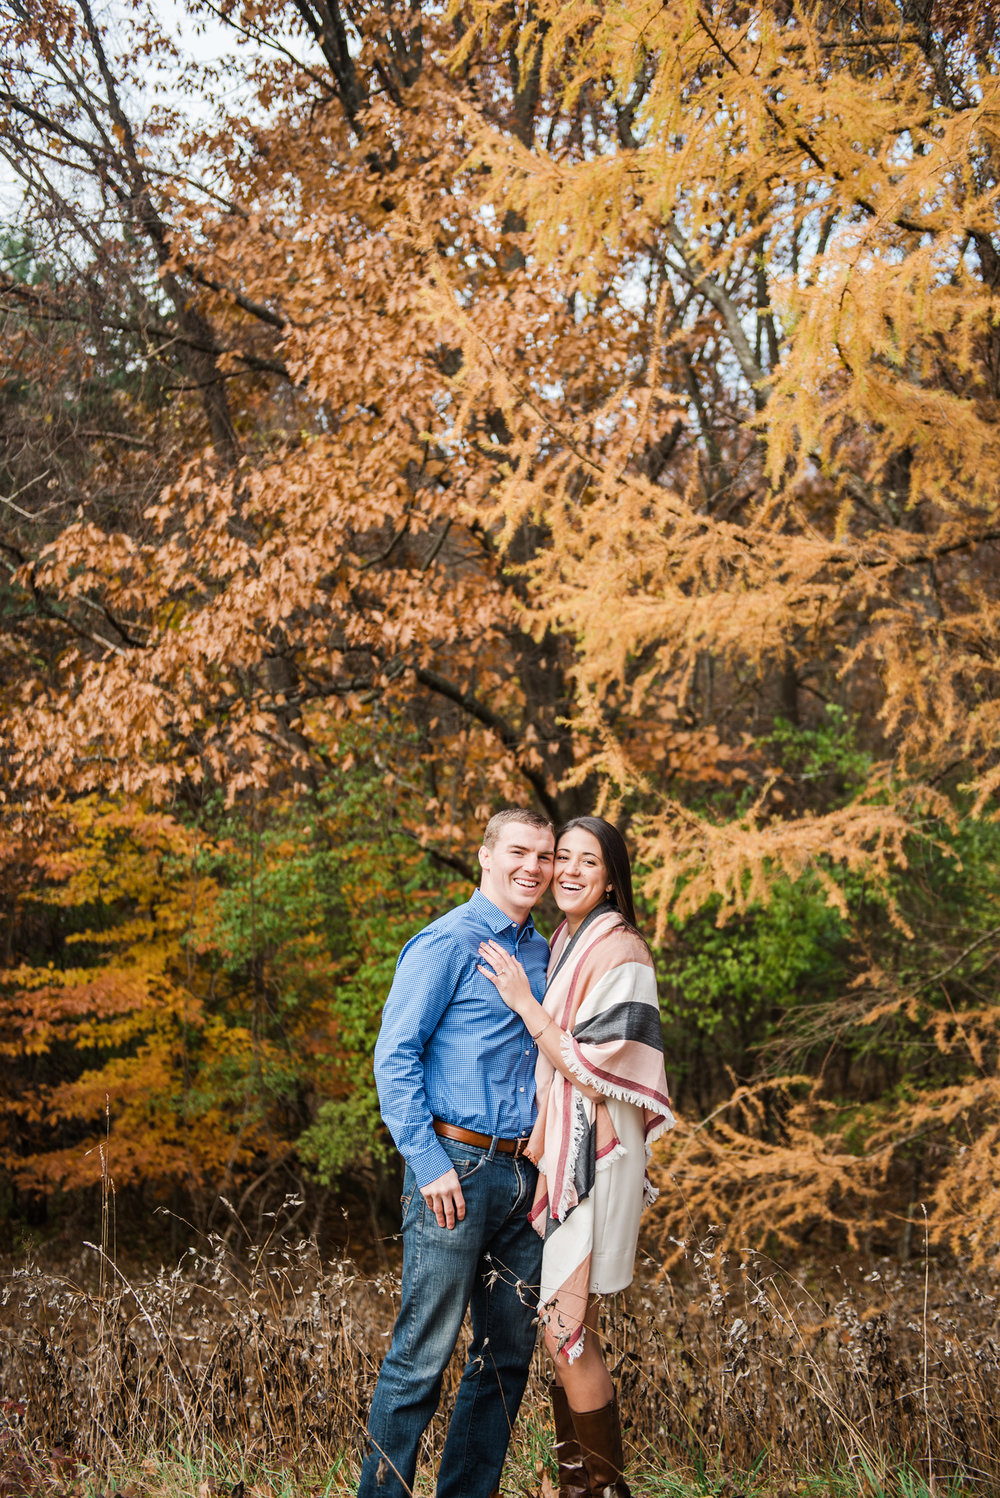 Mendon_Ponds_Park_Rochester_Engagement_Session_JILL_STUDIO_Rochester_NY_Photographer_DSC_0312.jpg